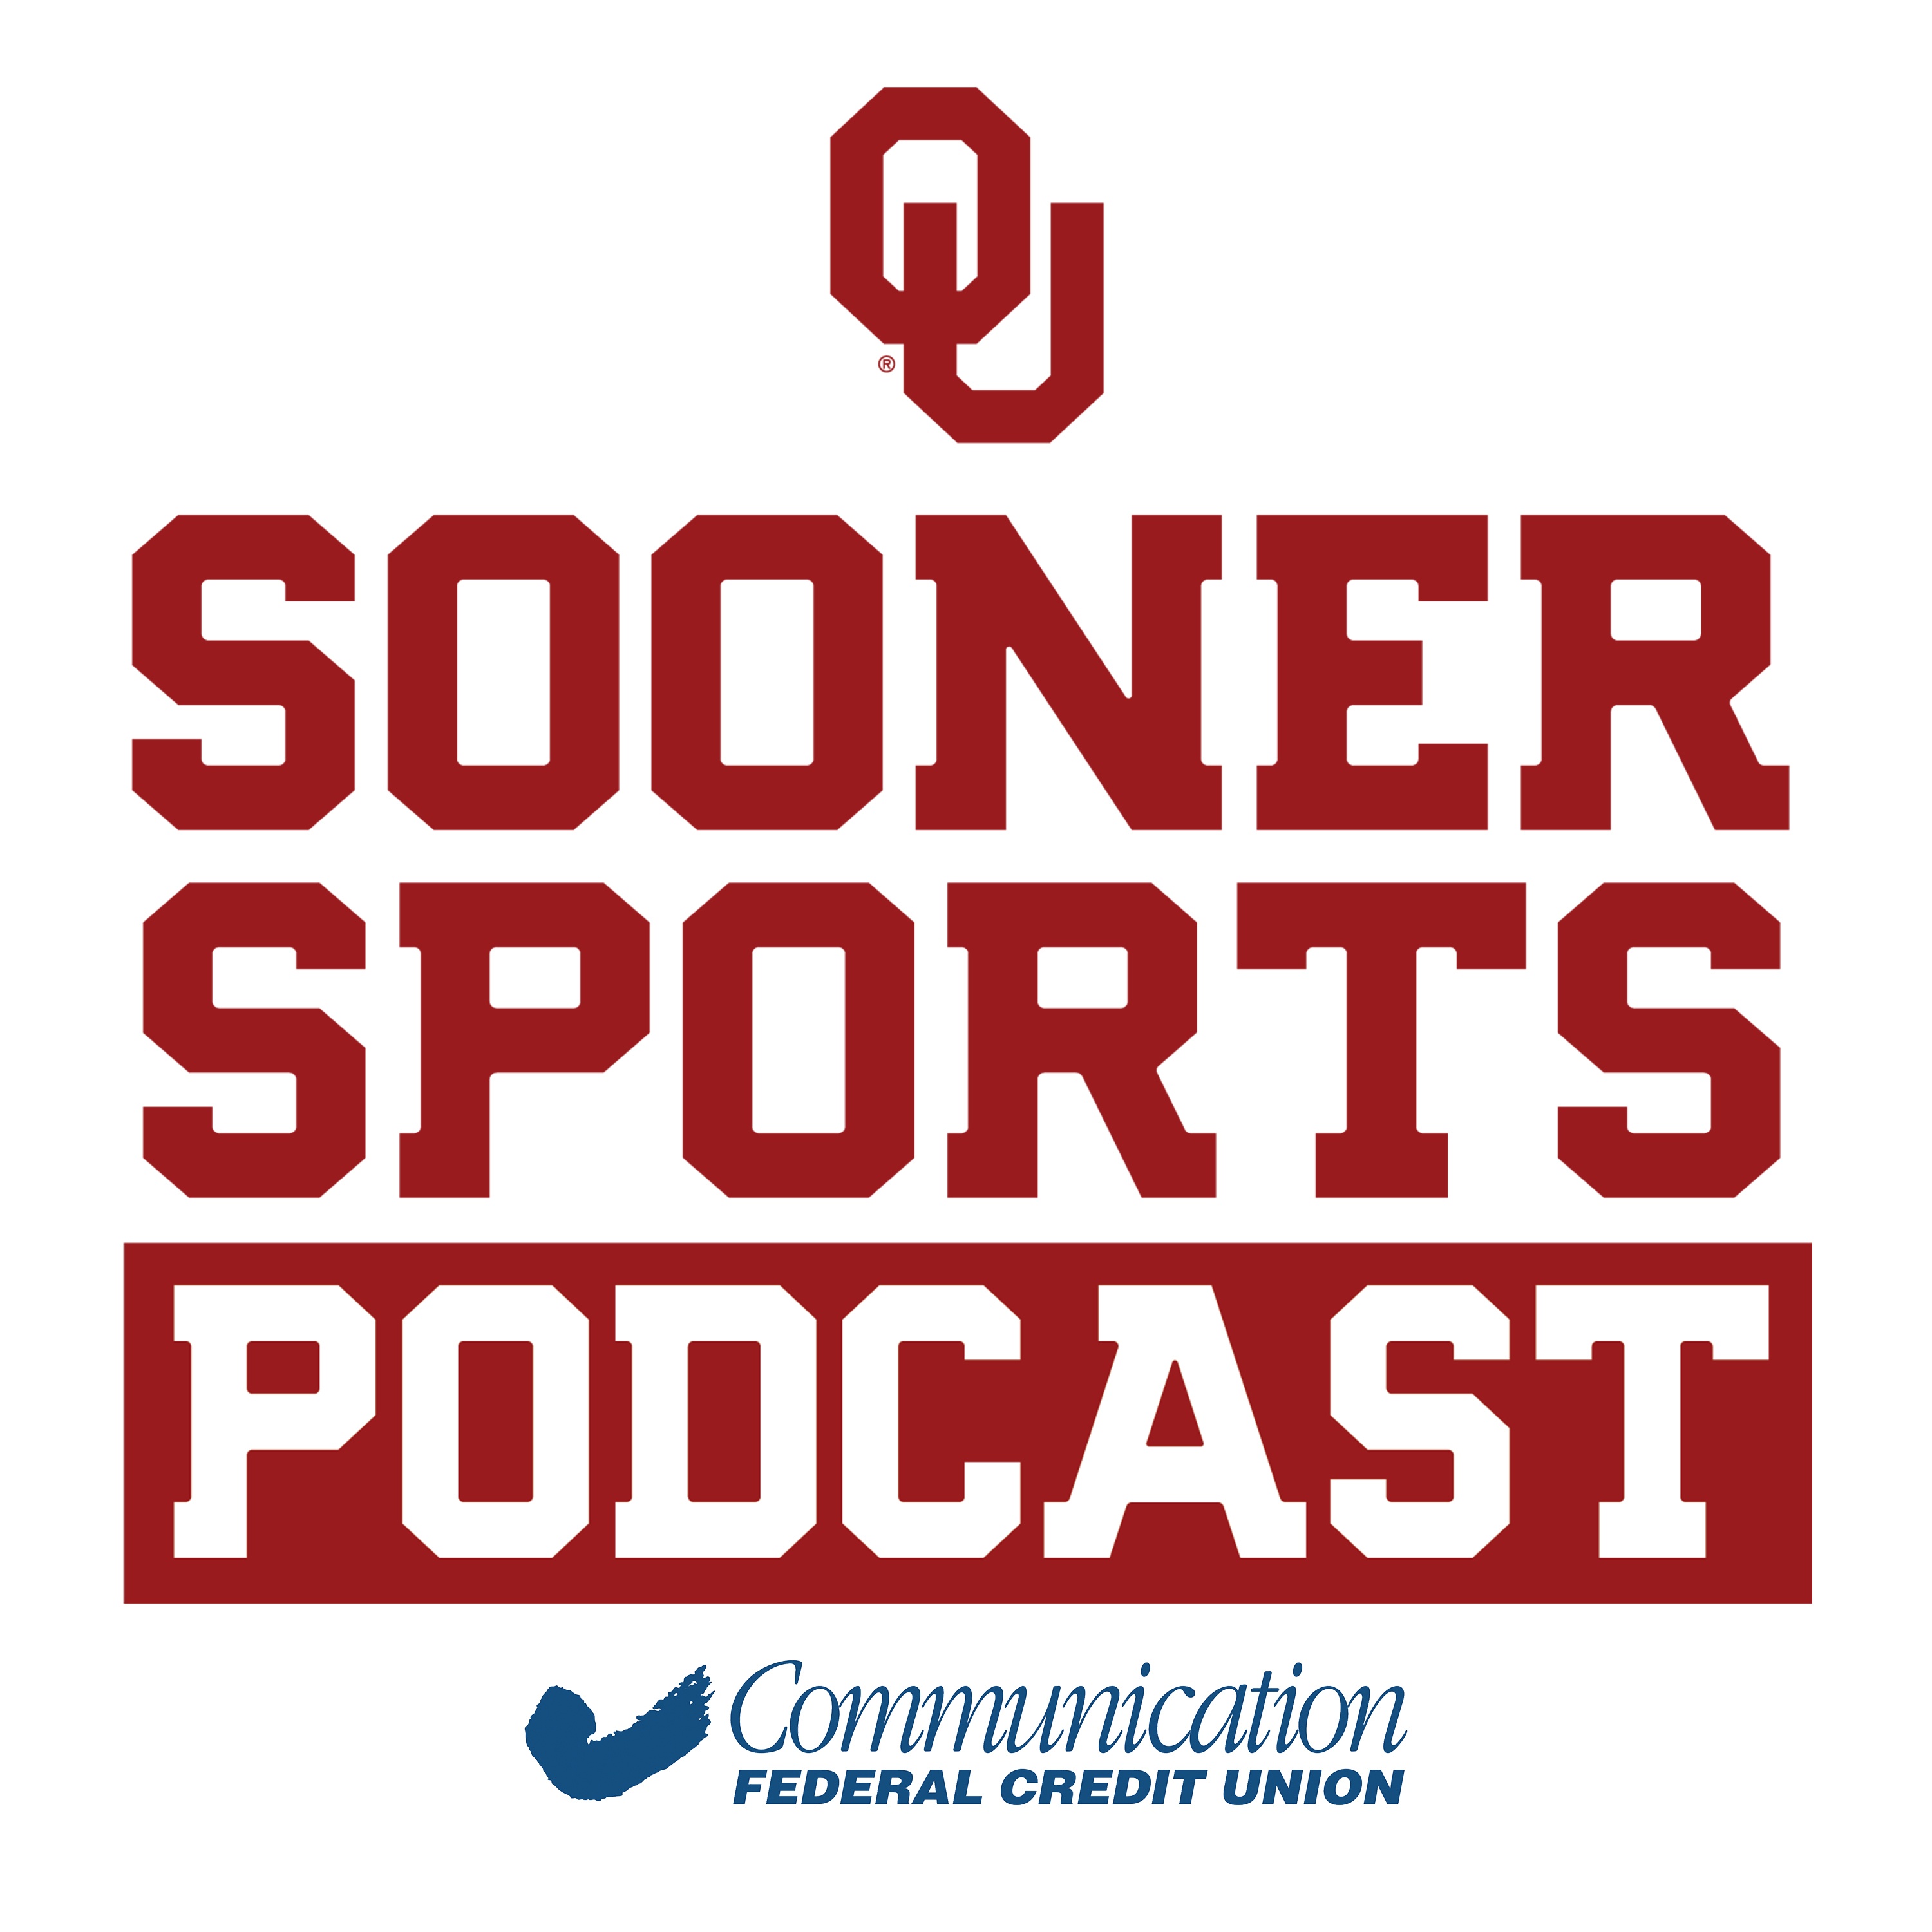 Sooner Softball Wins Its 5th National Championship - Let's Celebrate!